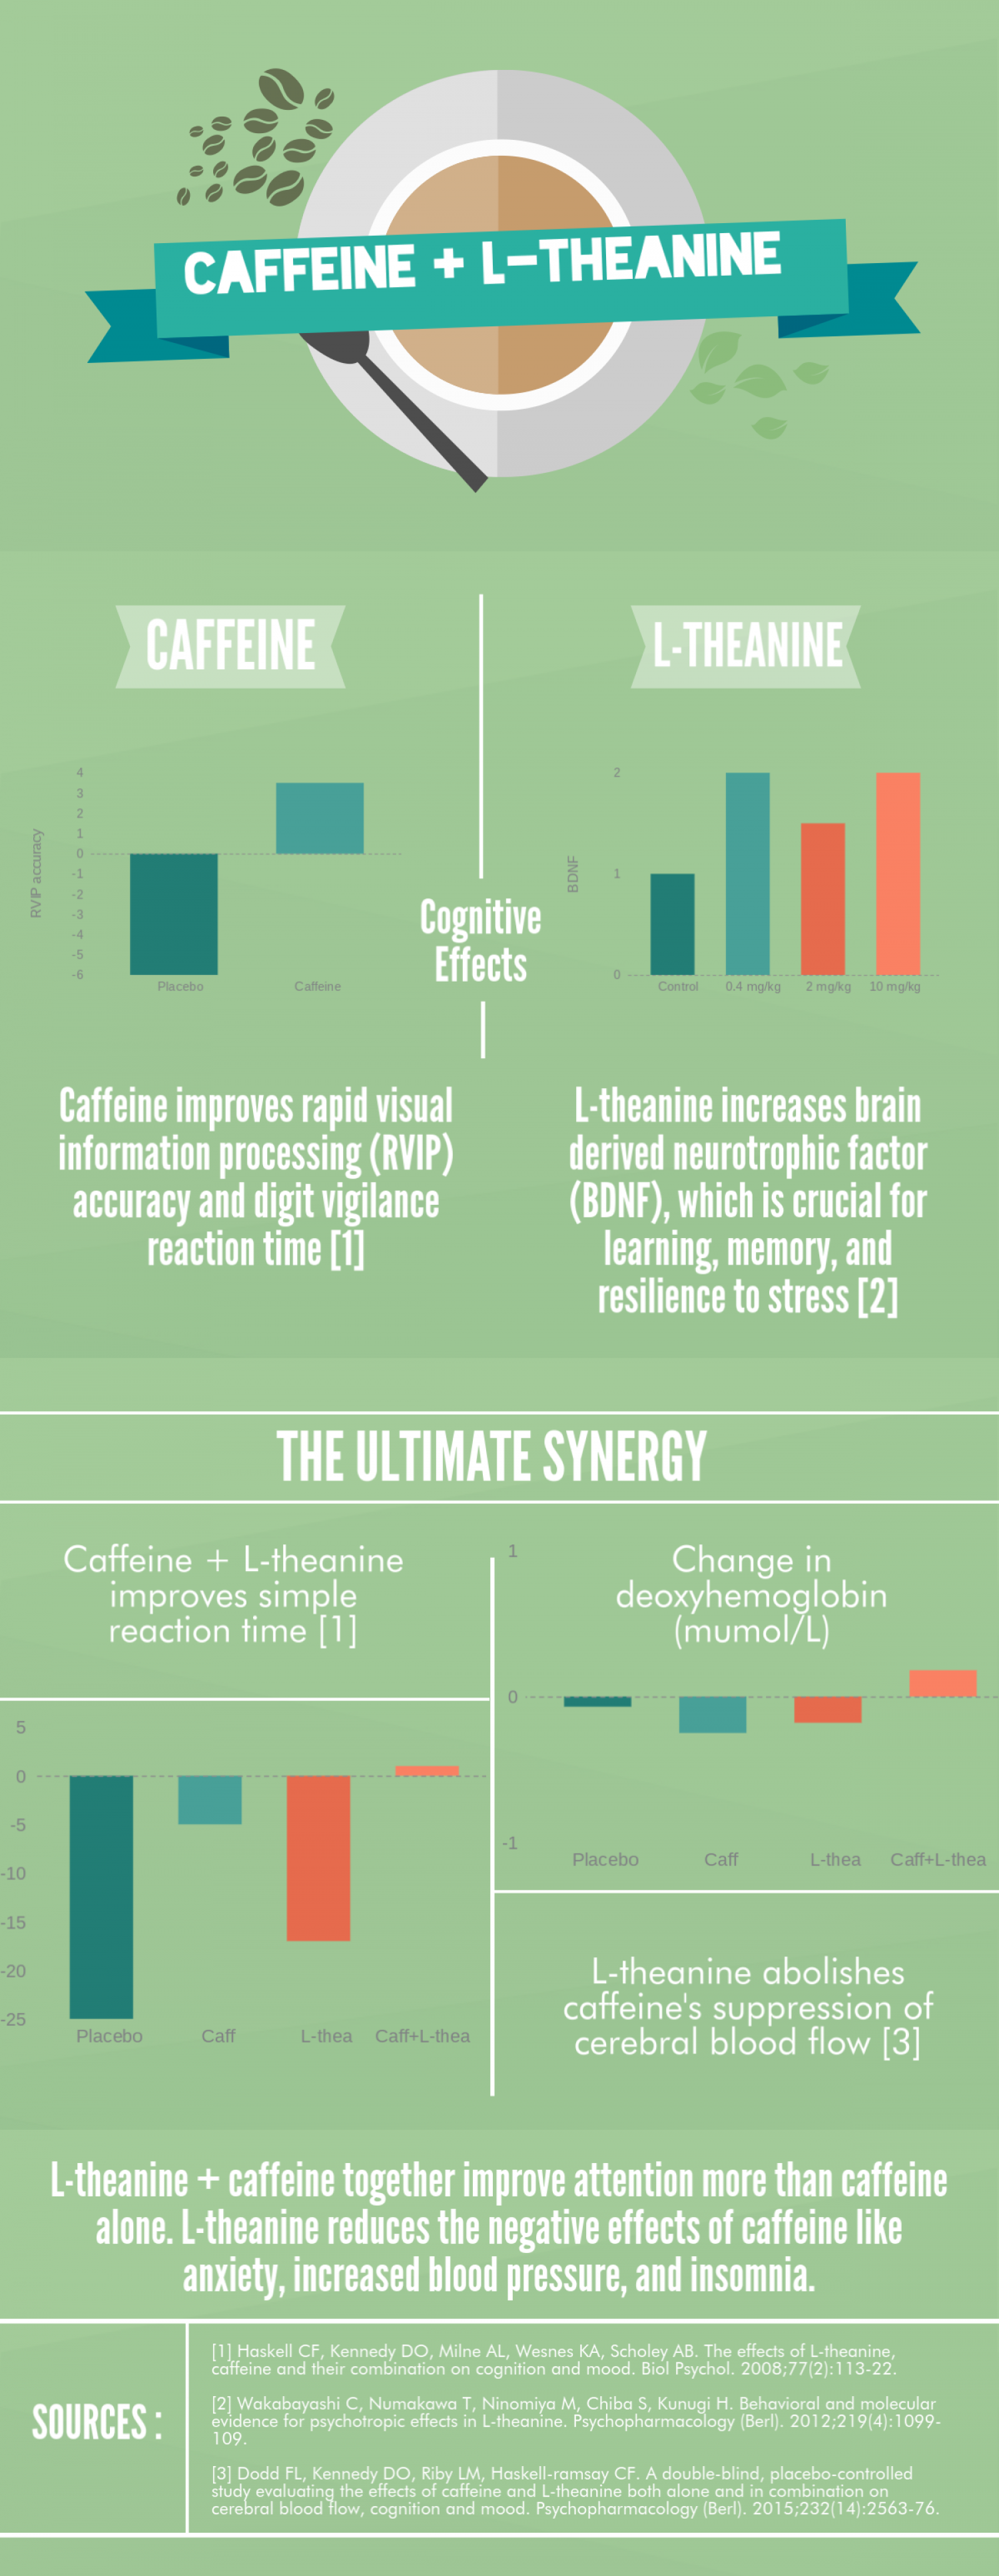 Caffeine + L-theanine: Better Together Infographic